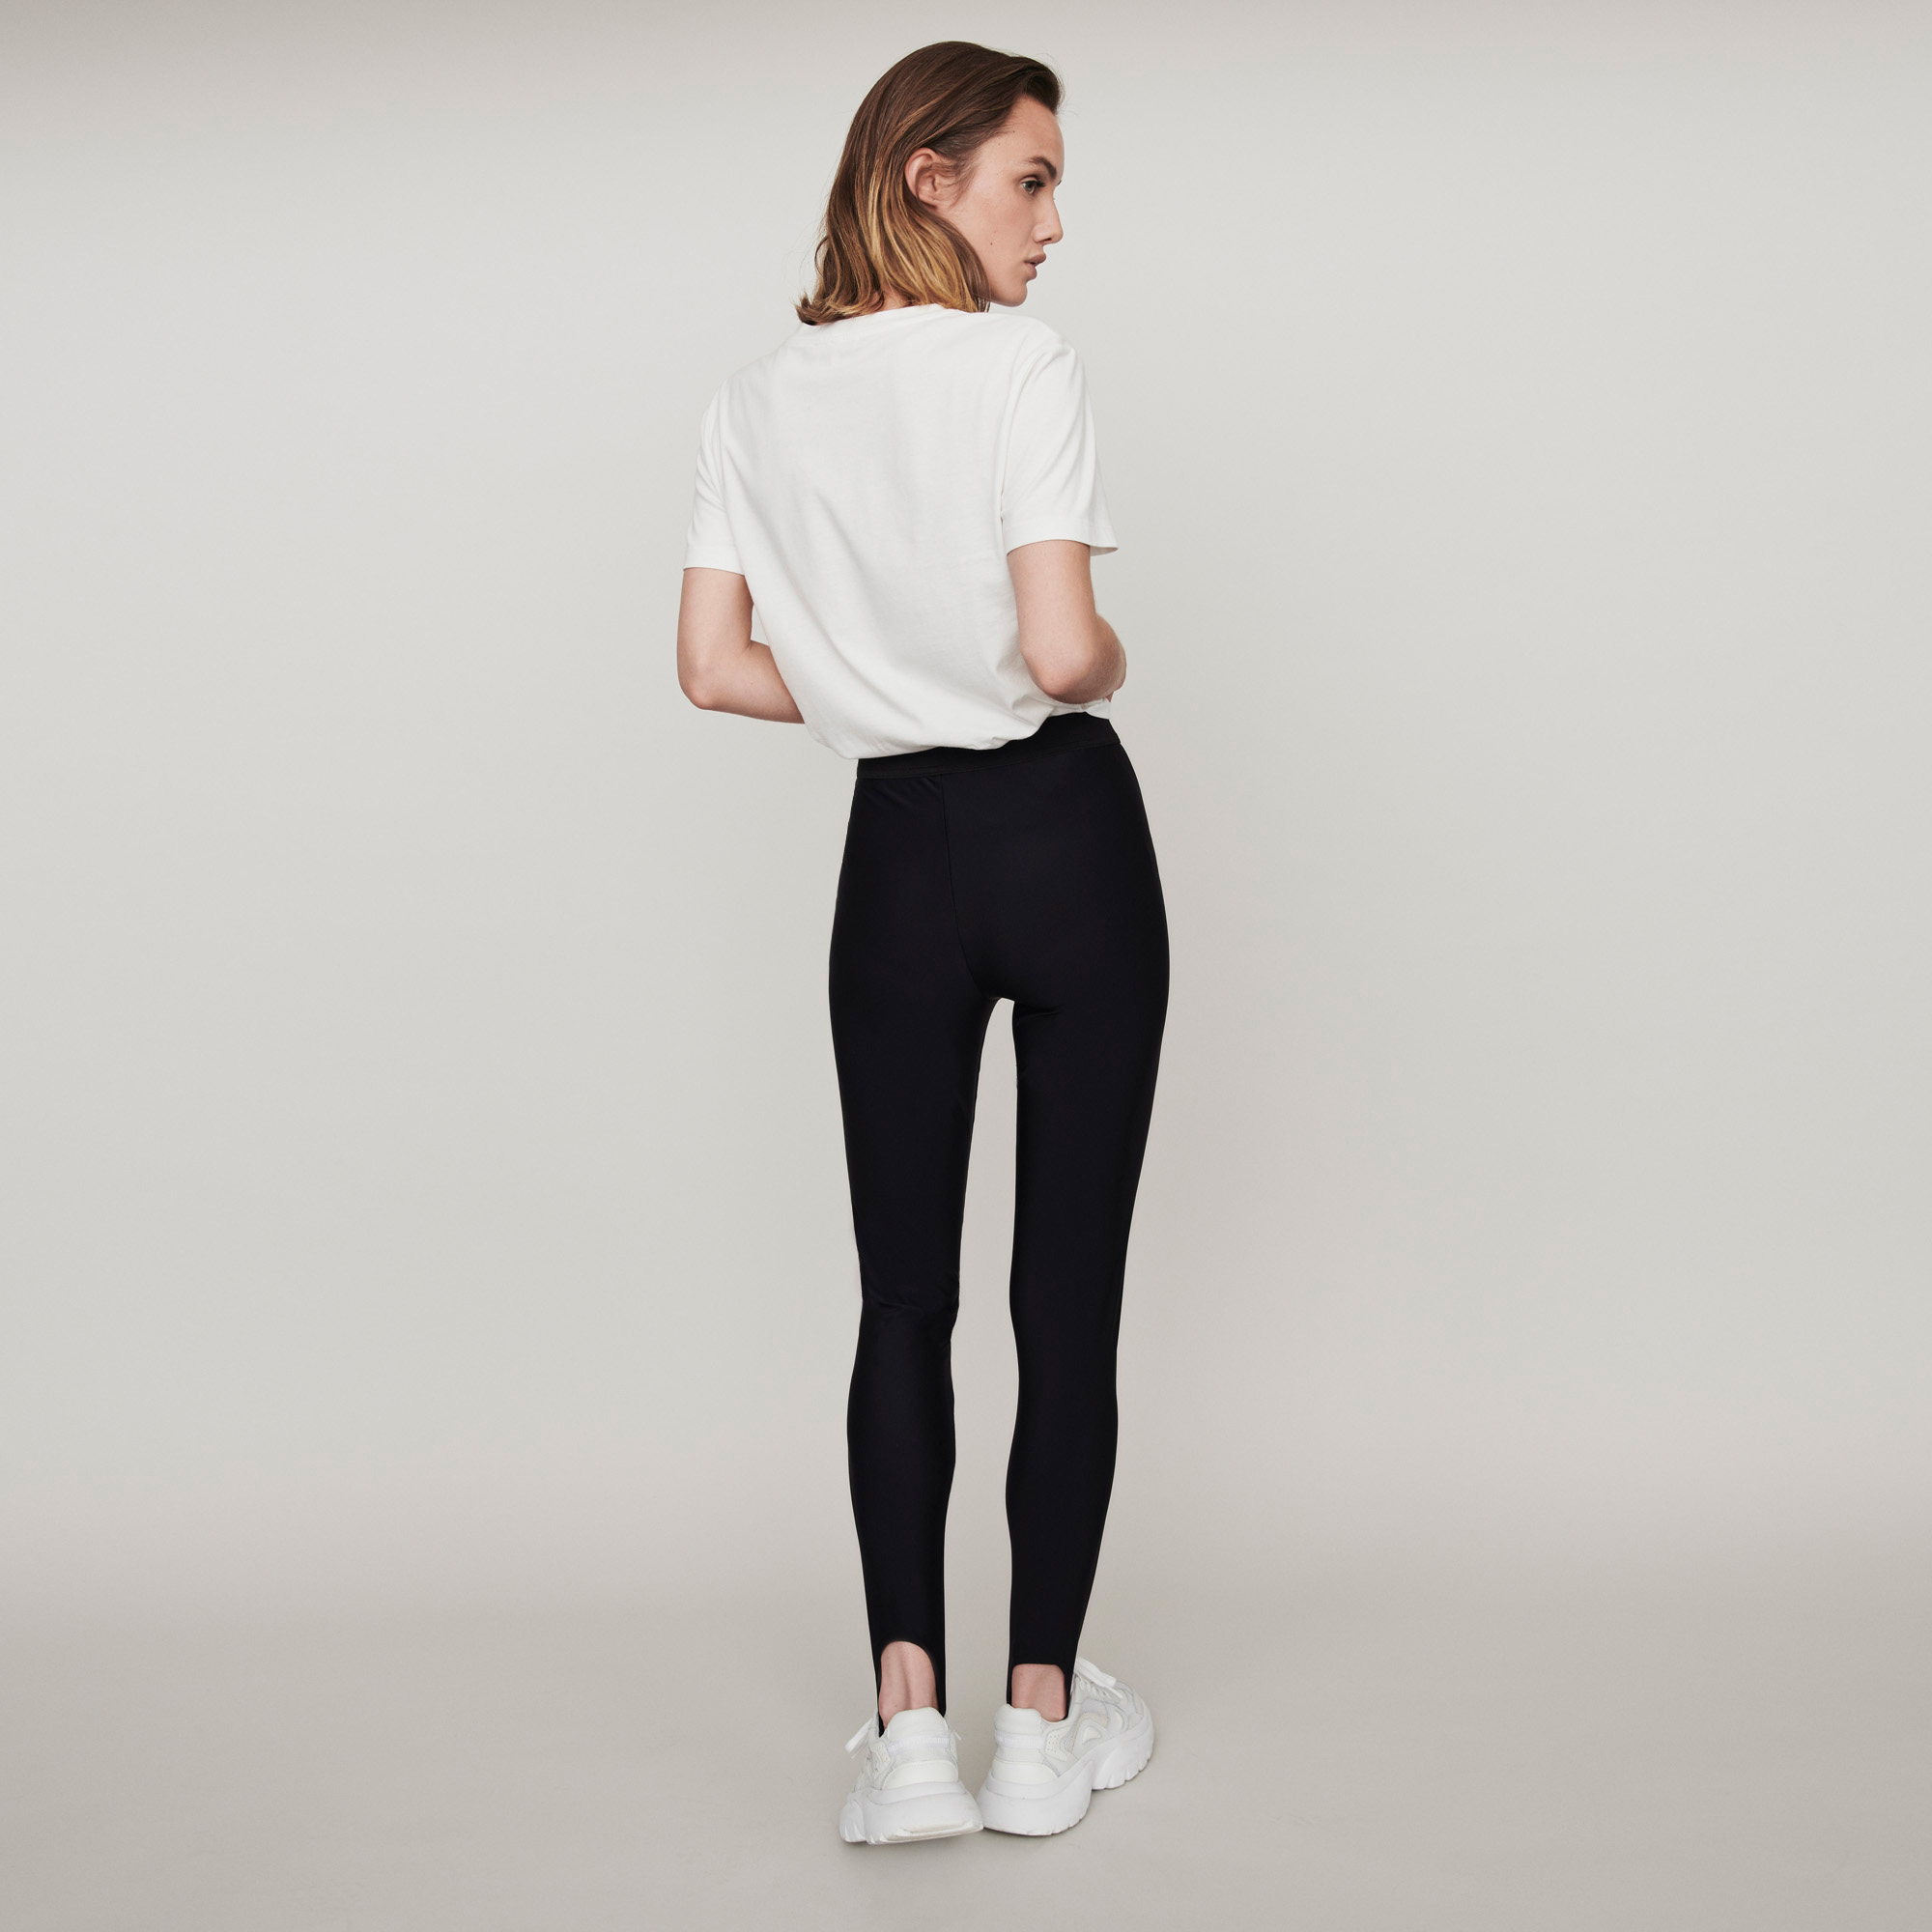 Stretch Stirrup Pants - Black